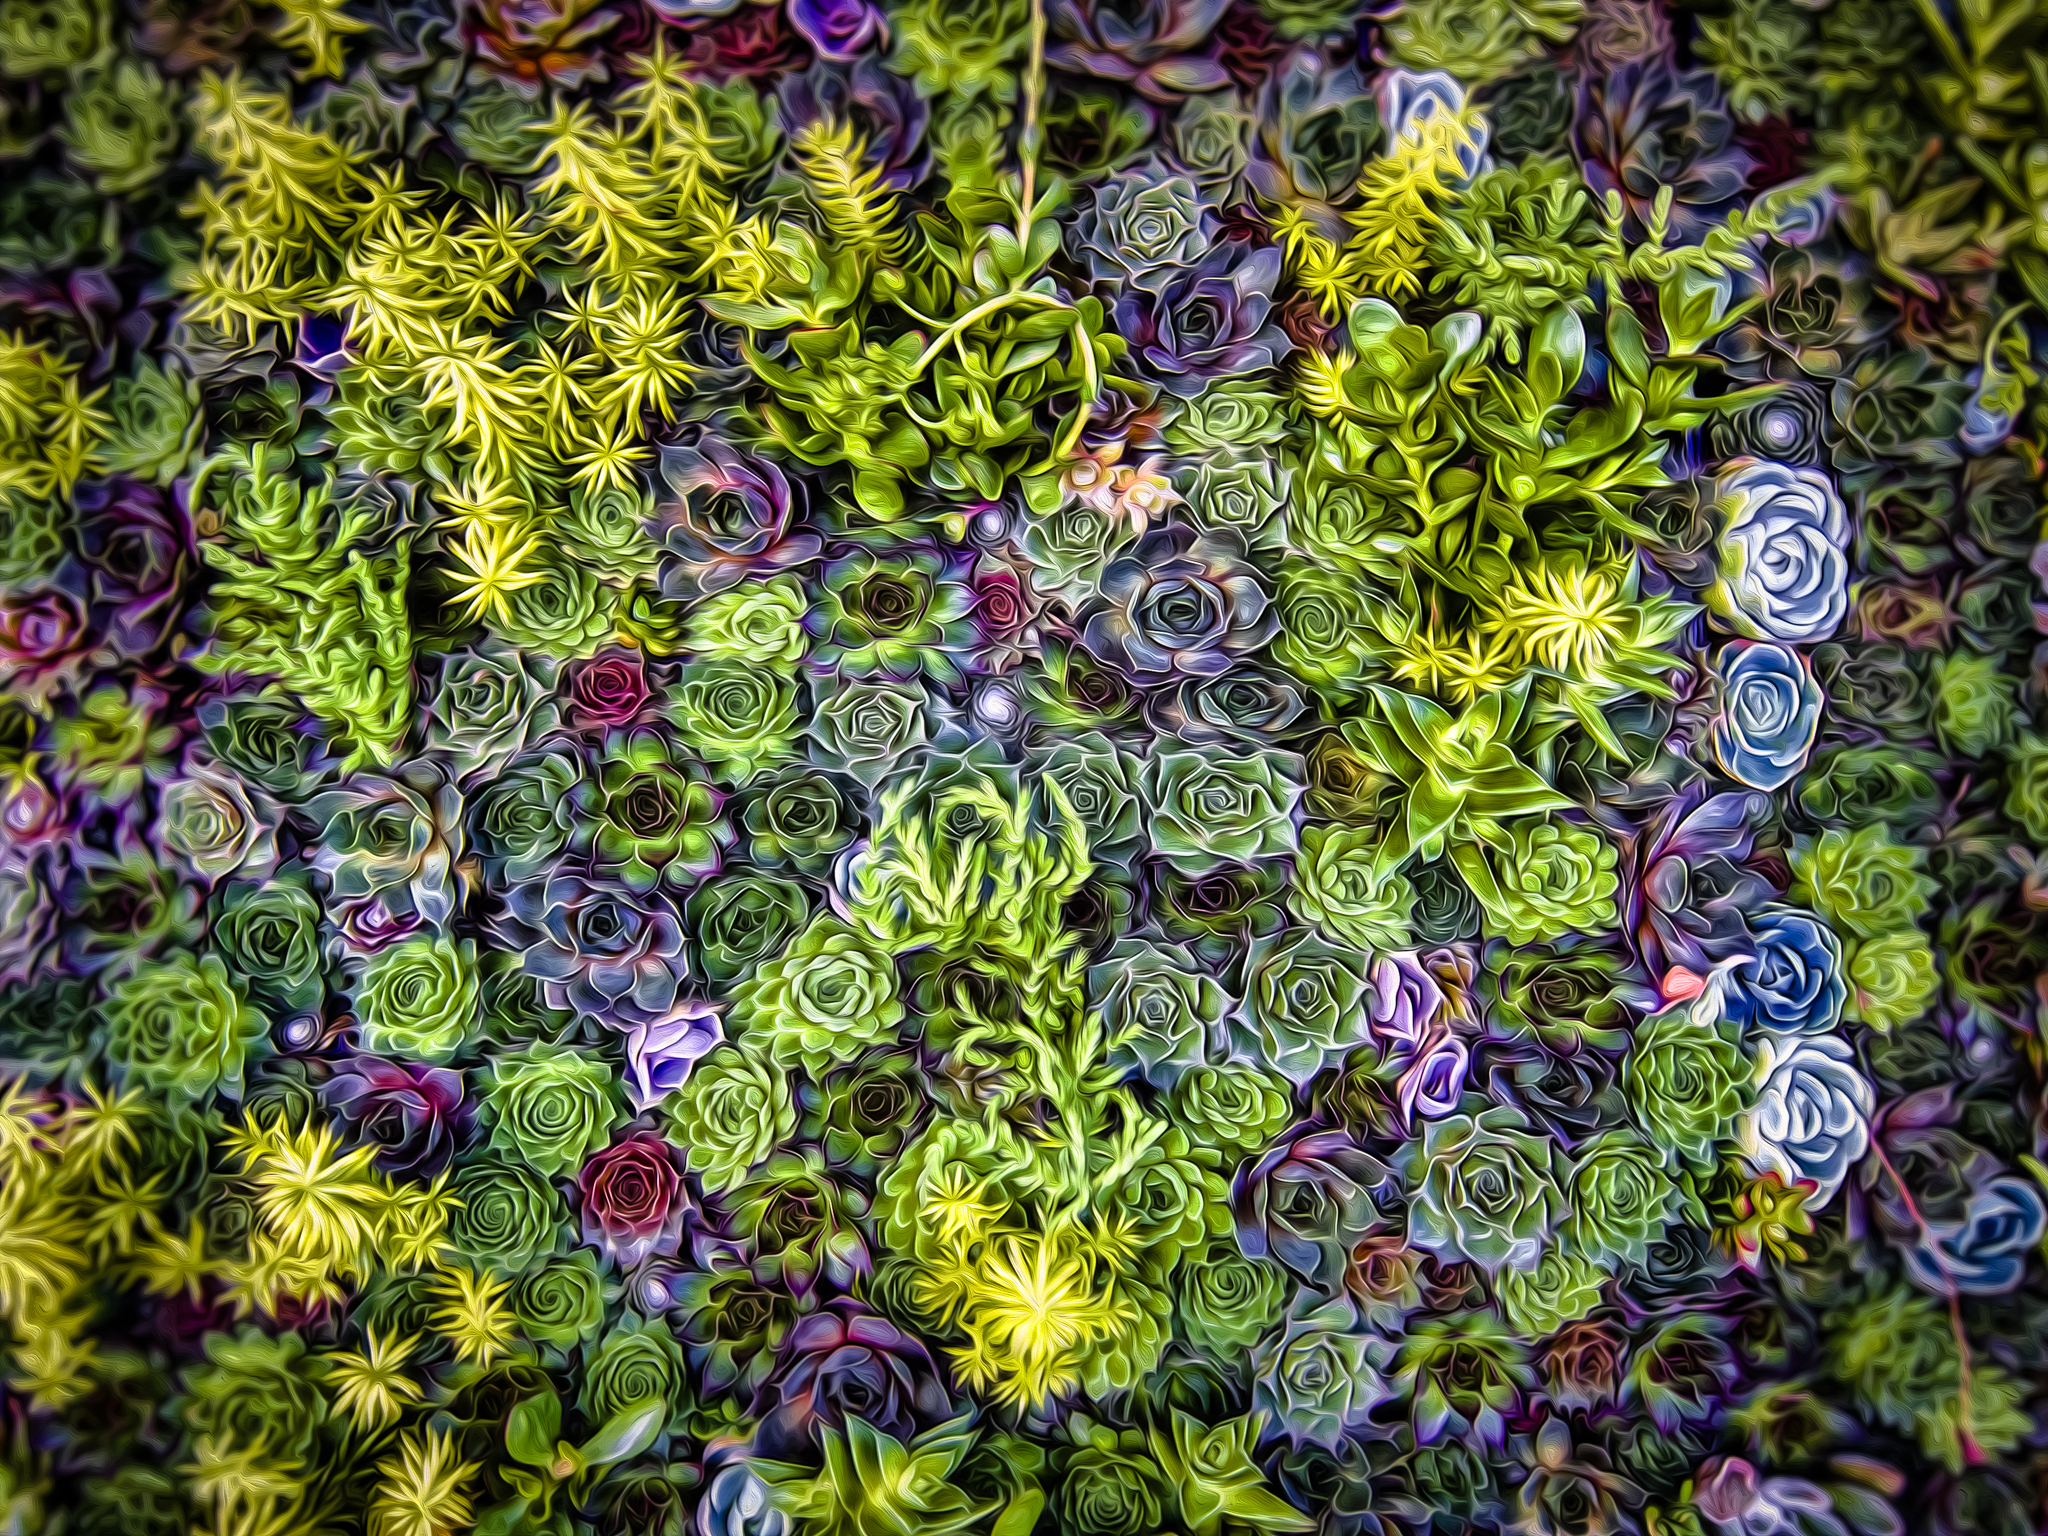 So Succulent - Menlo Park - 2010